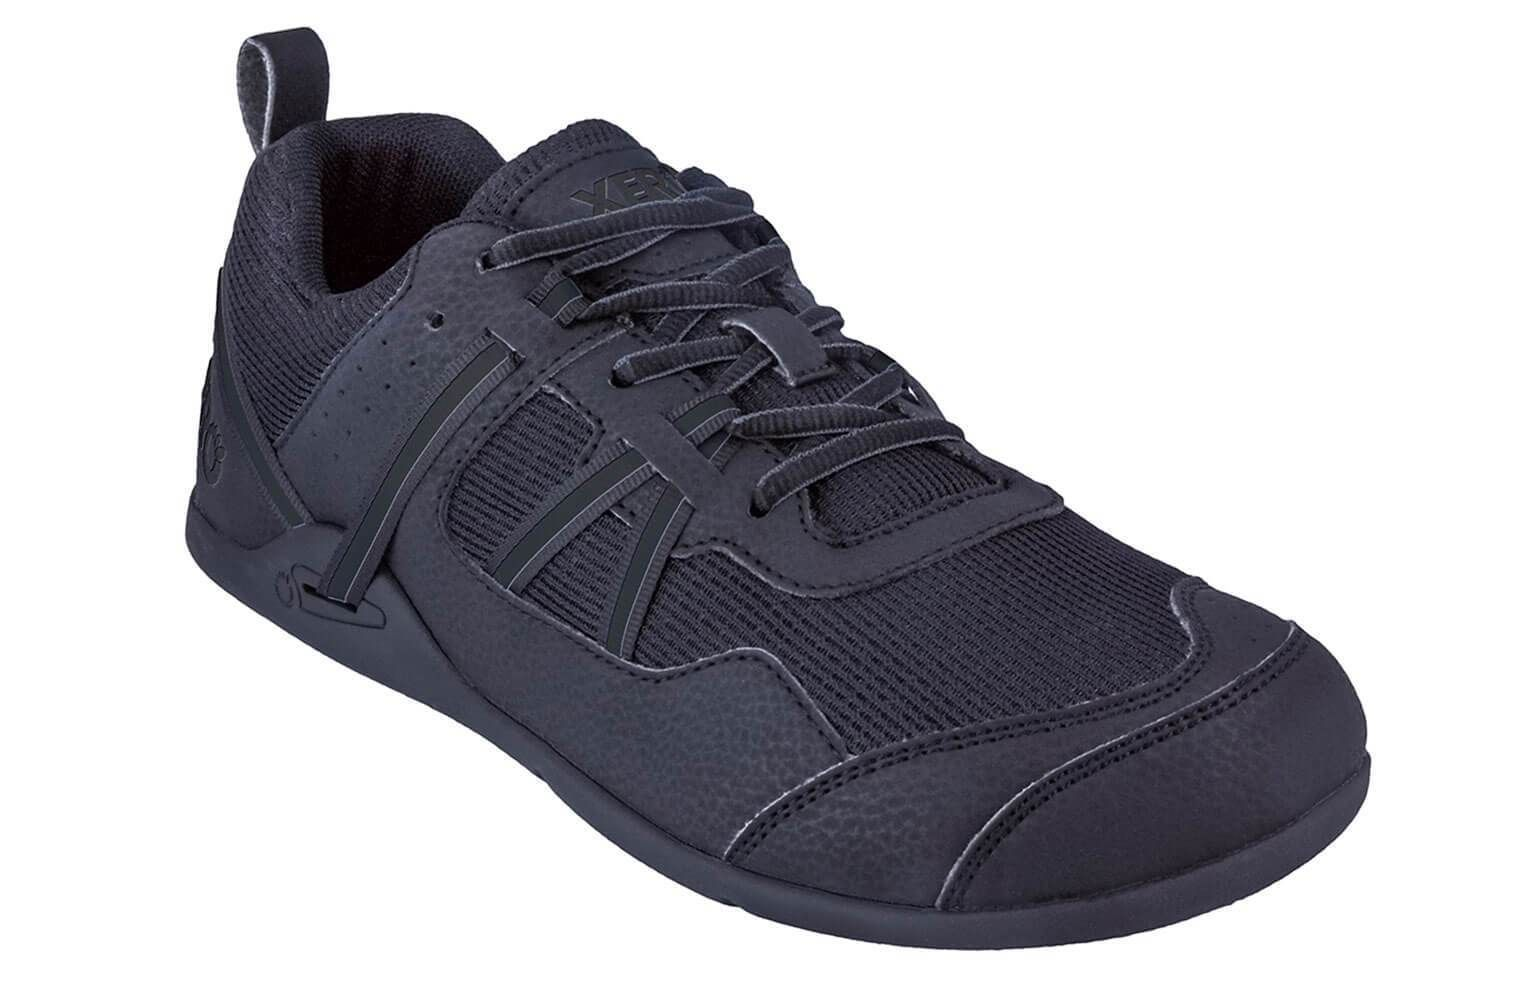 Awesome casual minimalist shoe from